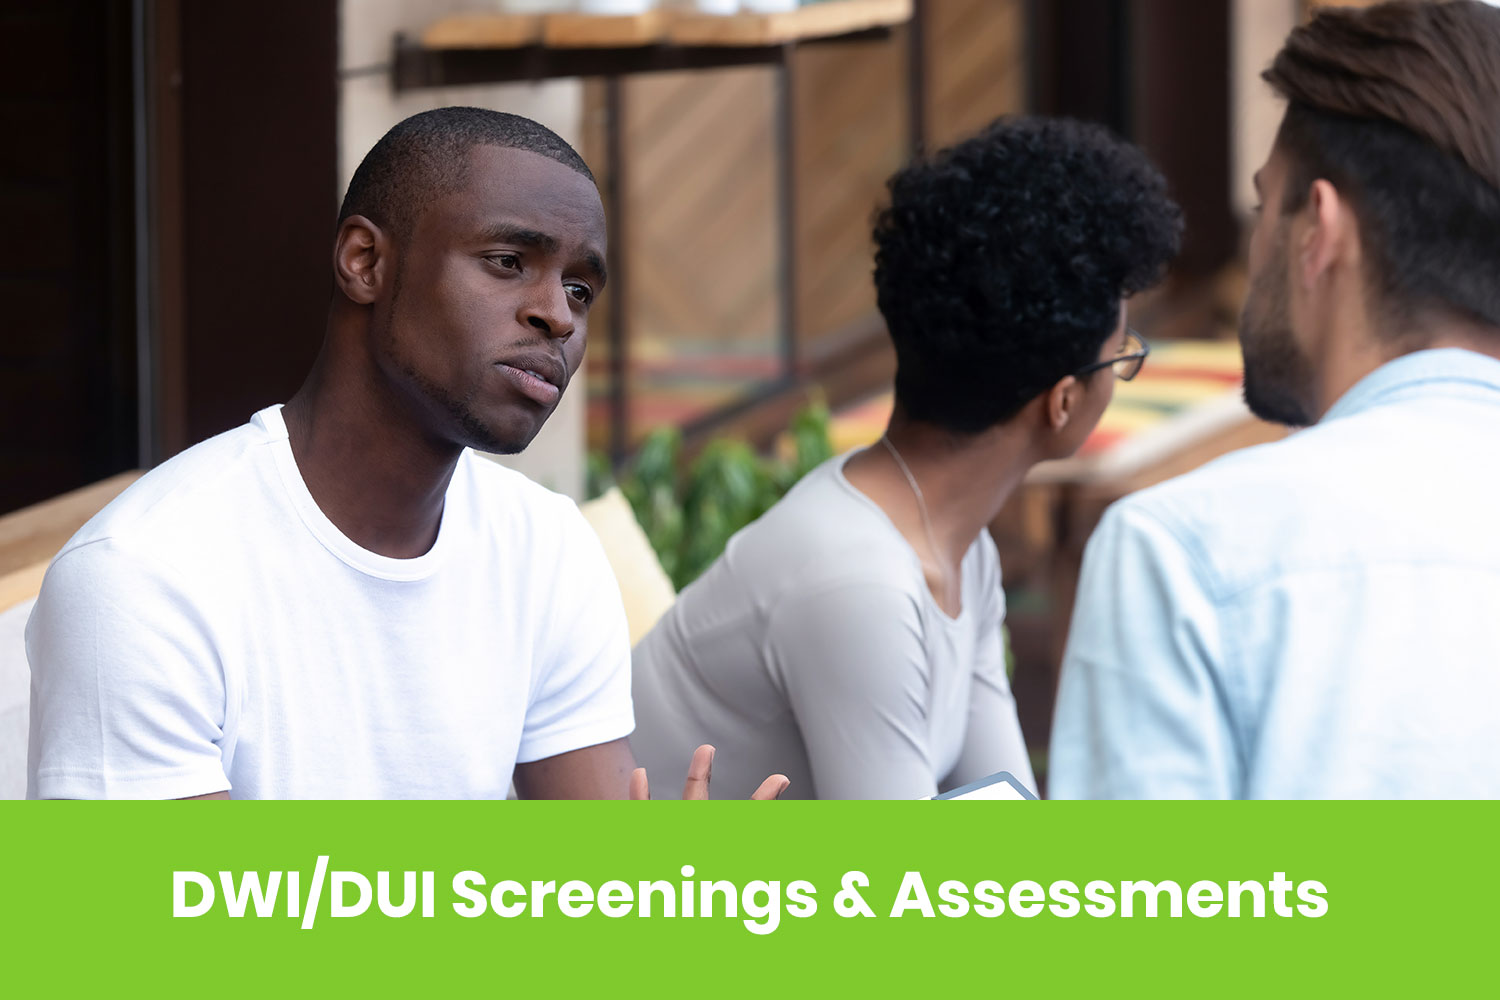 DWI/DUI Screenings and Assessments